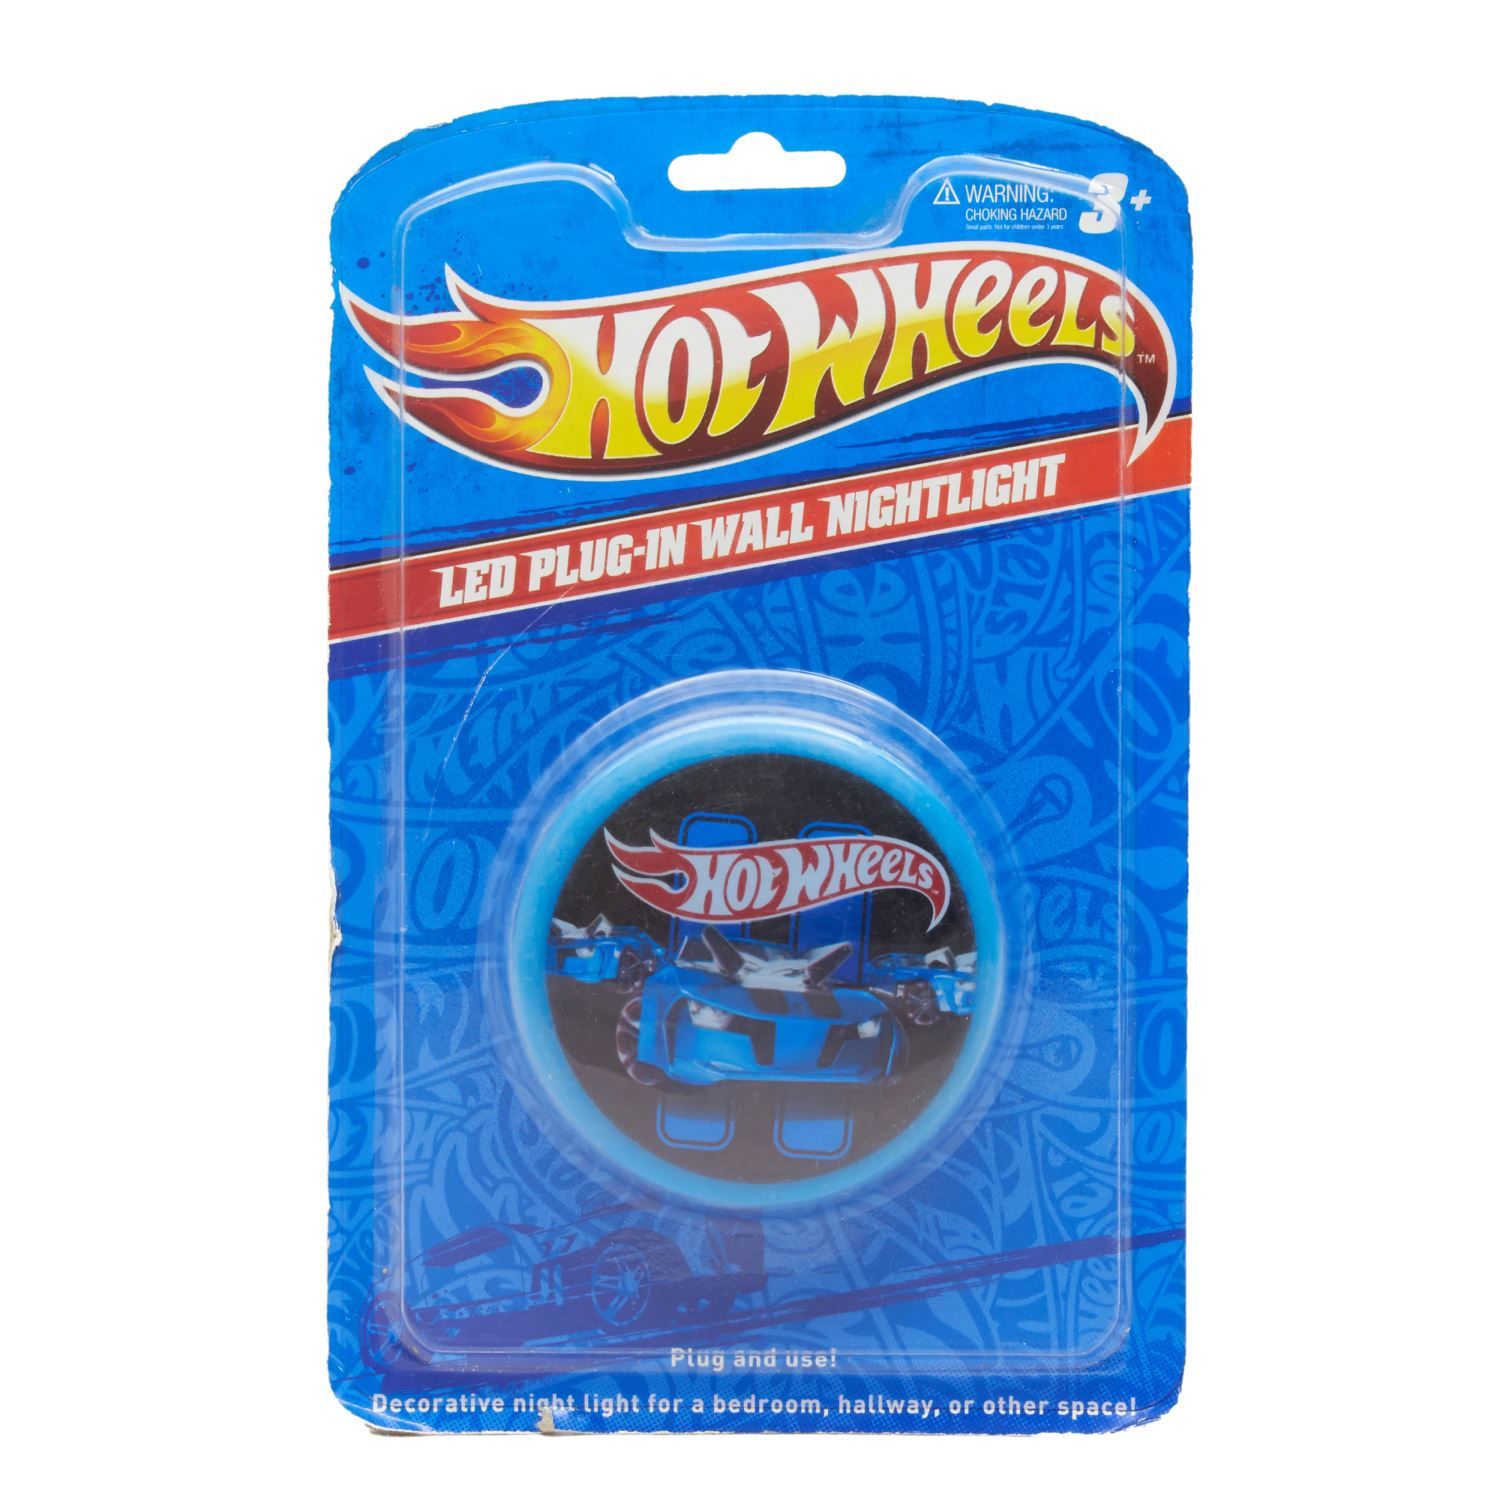 Hot Wheels LED Plug-in Wall Night Lamp